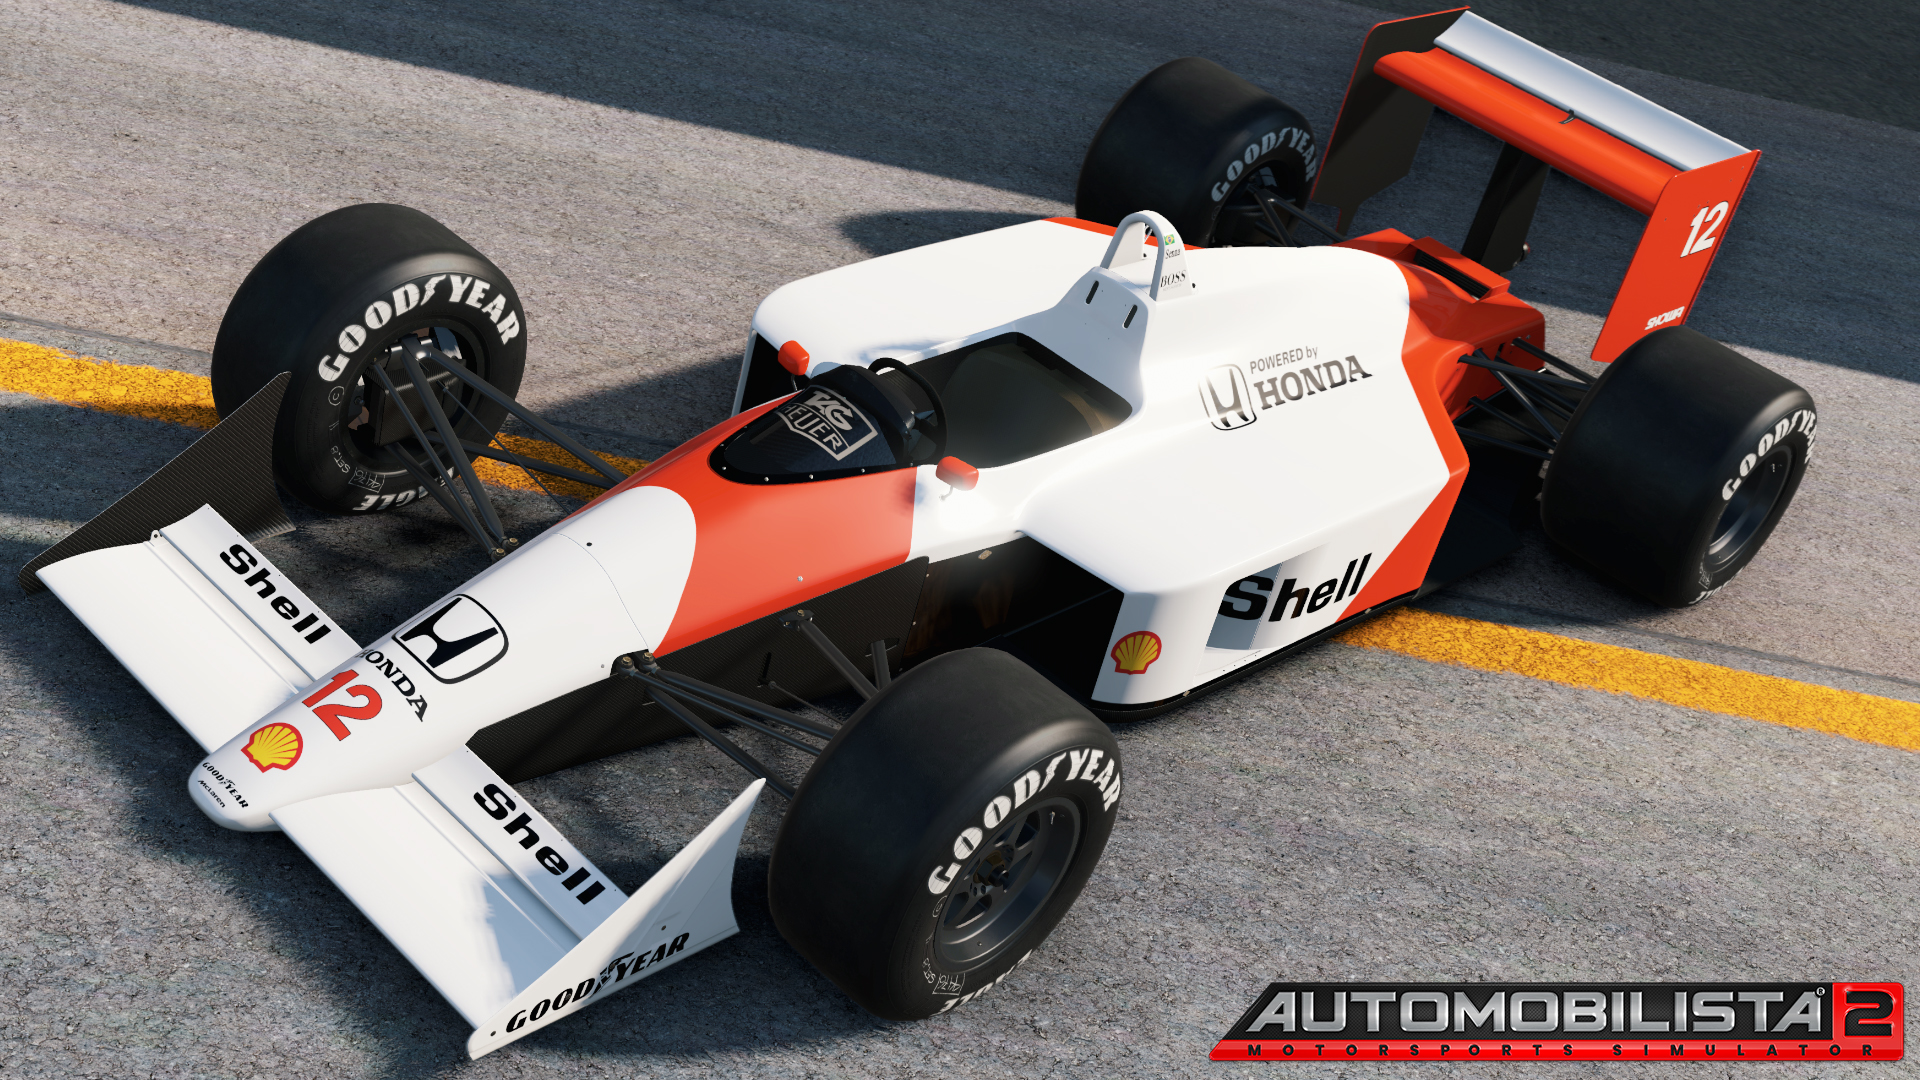 Automobilista 2 Update 0.9.2.1 Now Available   RaceSimCentral